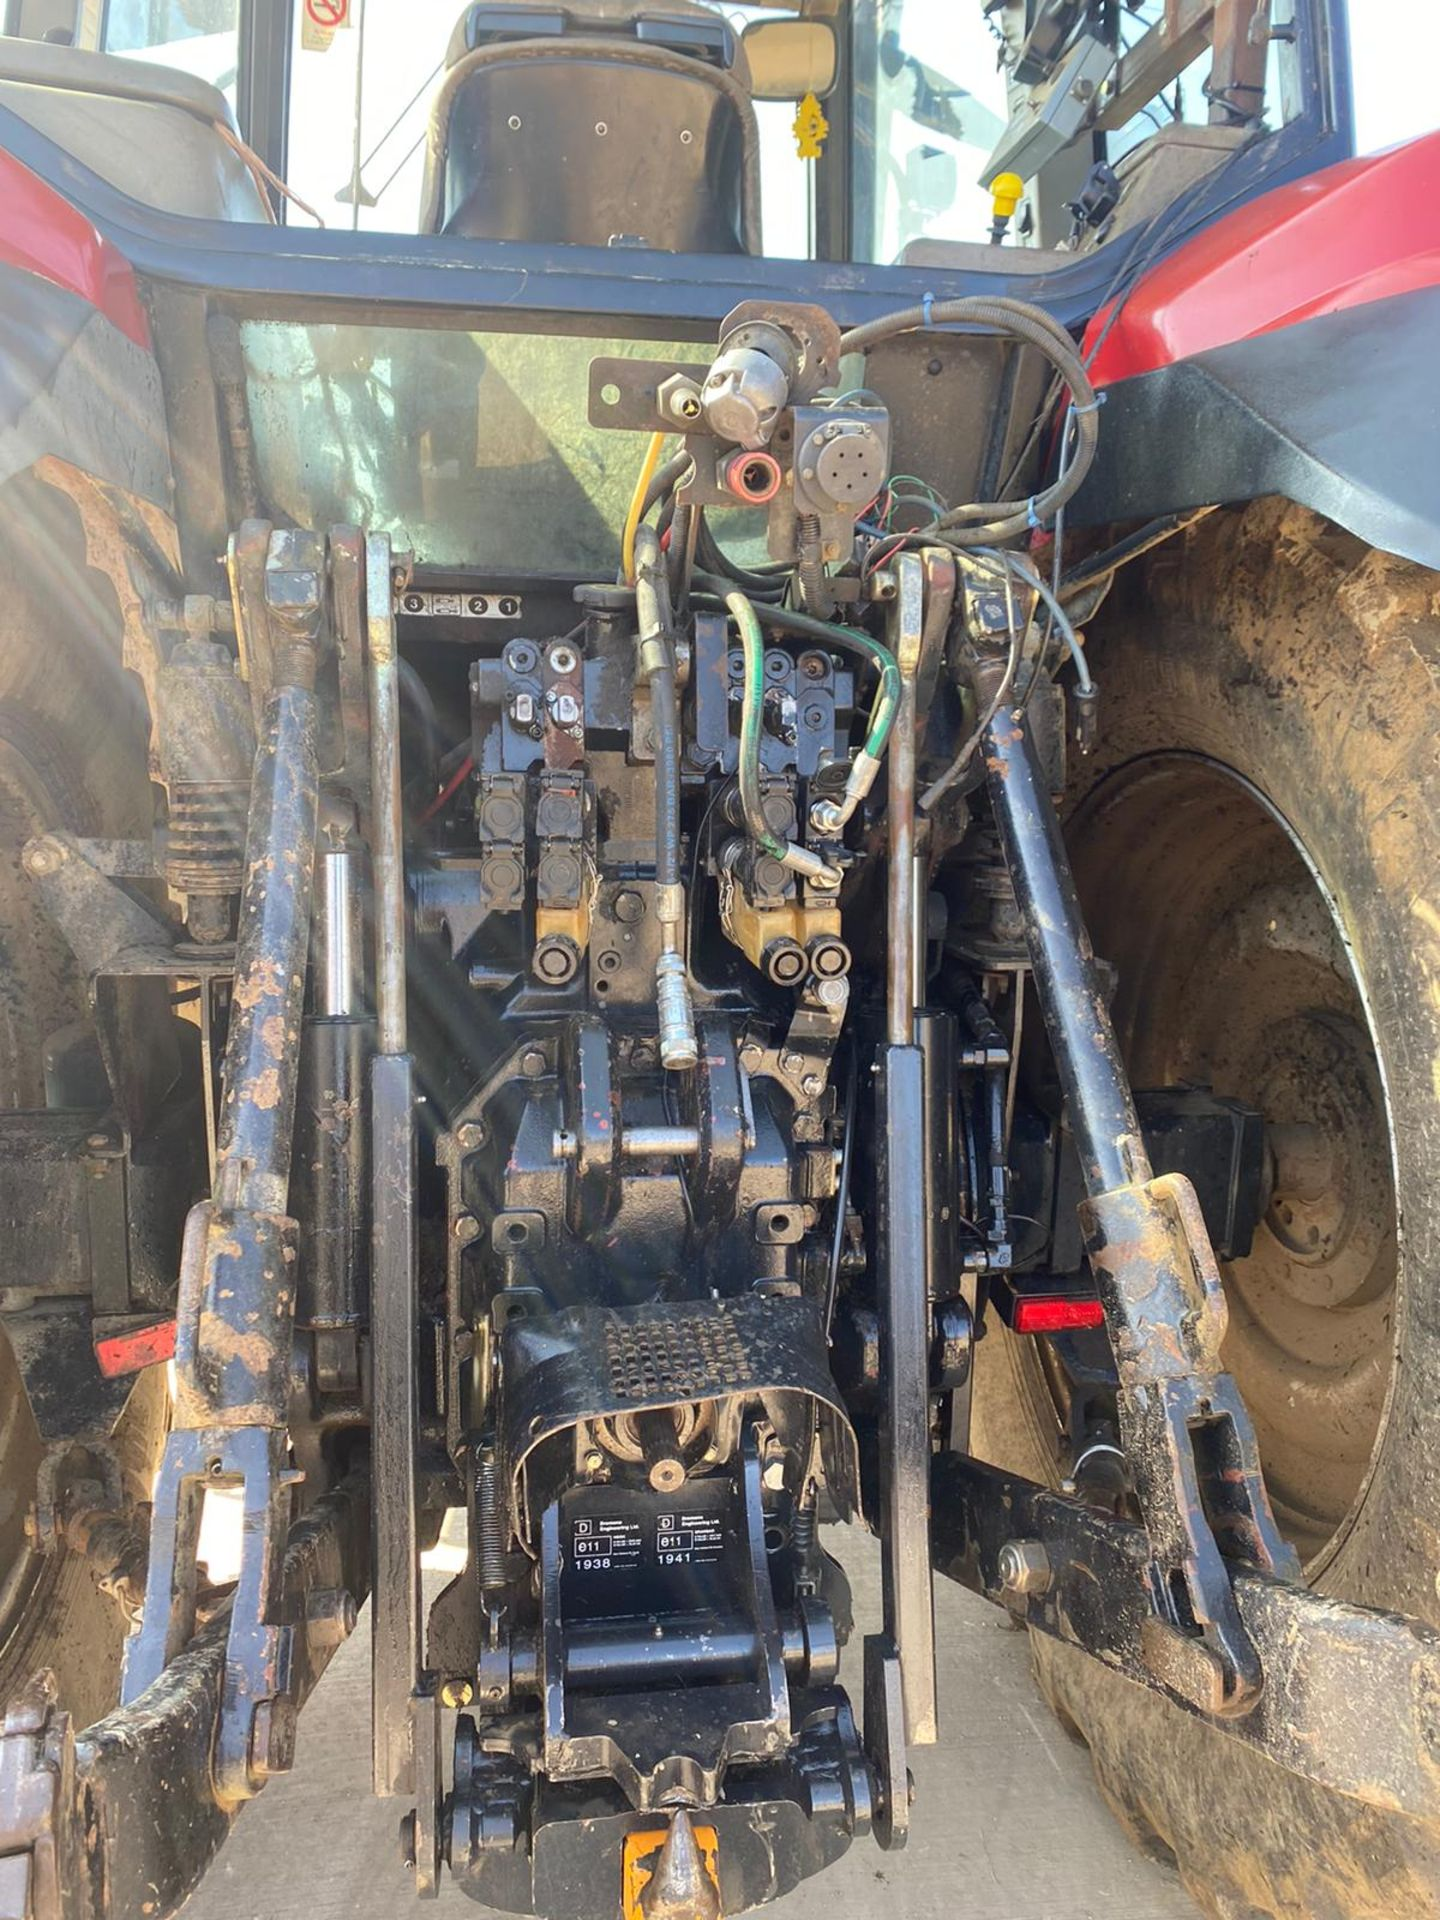 CASE MXM190 TRACTOR, VERY GOOD TYRES, TRANSPORT BOX ON THE FRONT, FRONT SUSPENSION *PLUS VAT* - Image 11 of 11